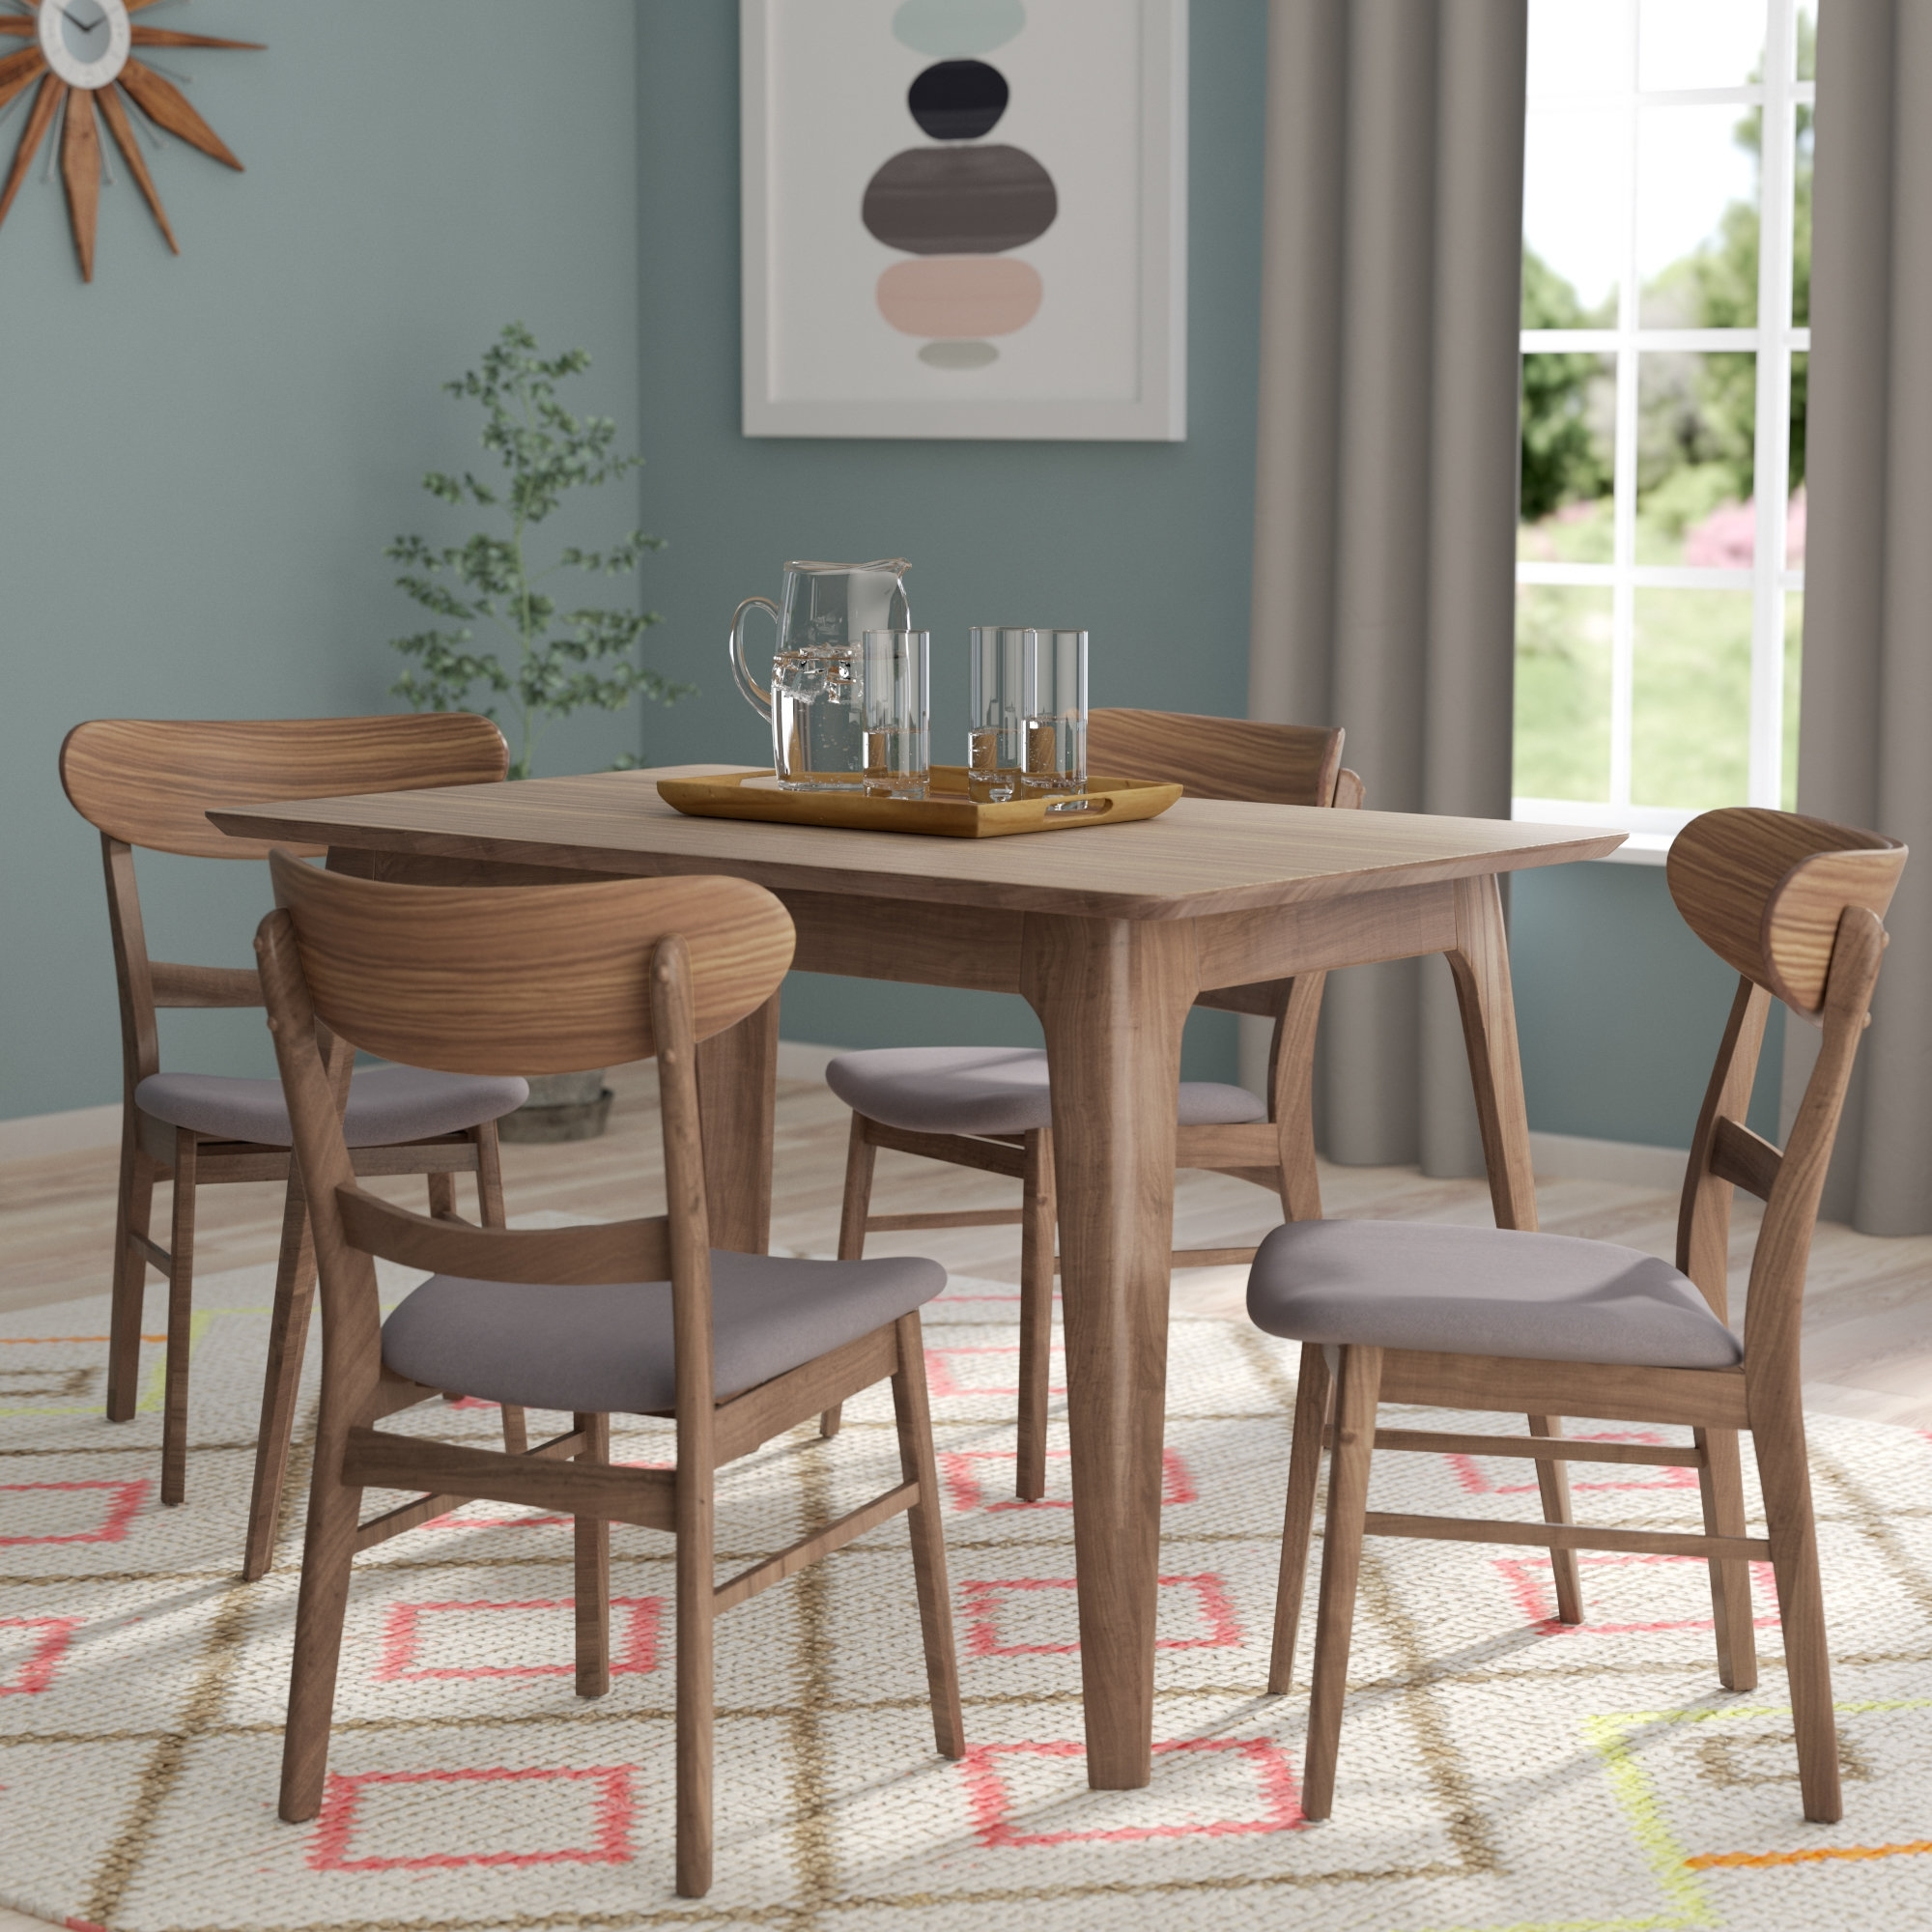 Craftsman 5 Piece Round Dining Sets With Side Chairs For Preferred Langley Street Yolanda 5 Piece Wood Dining Set & Reviews (View 2 of 25)